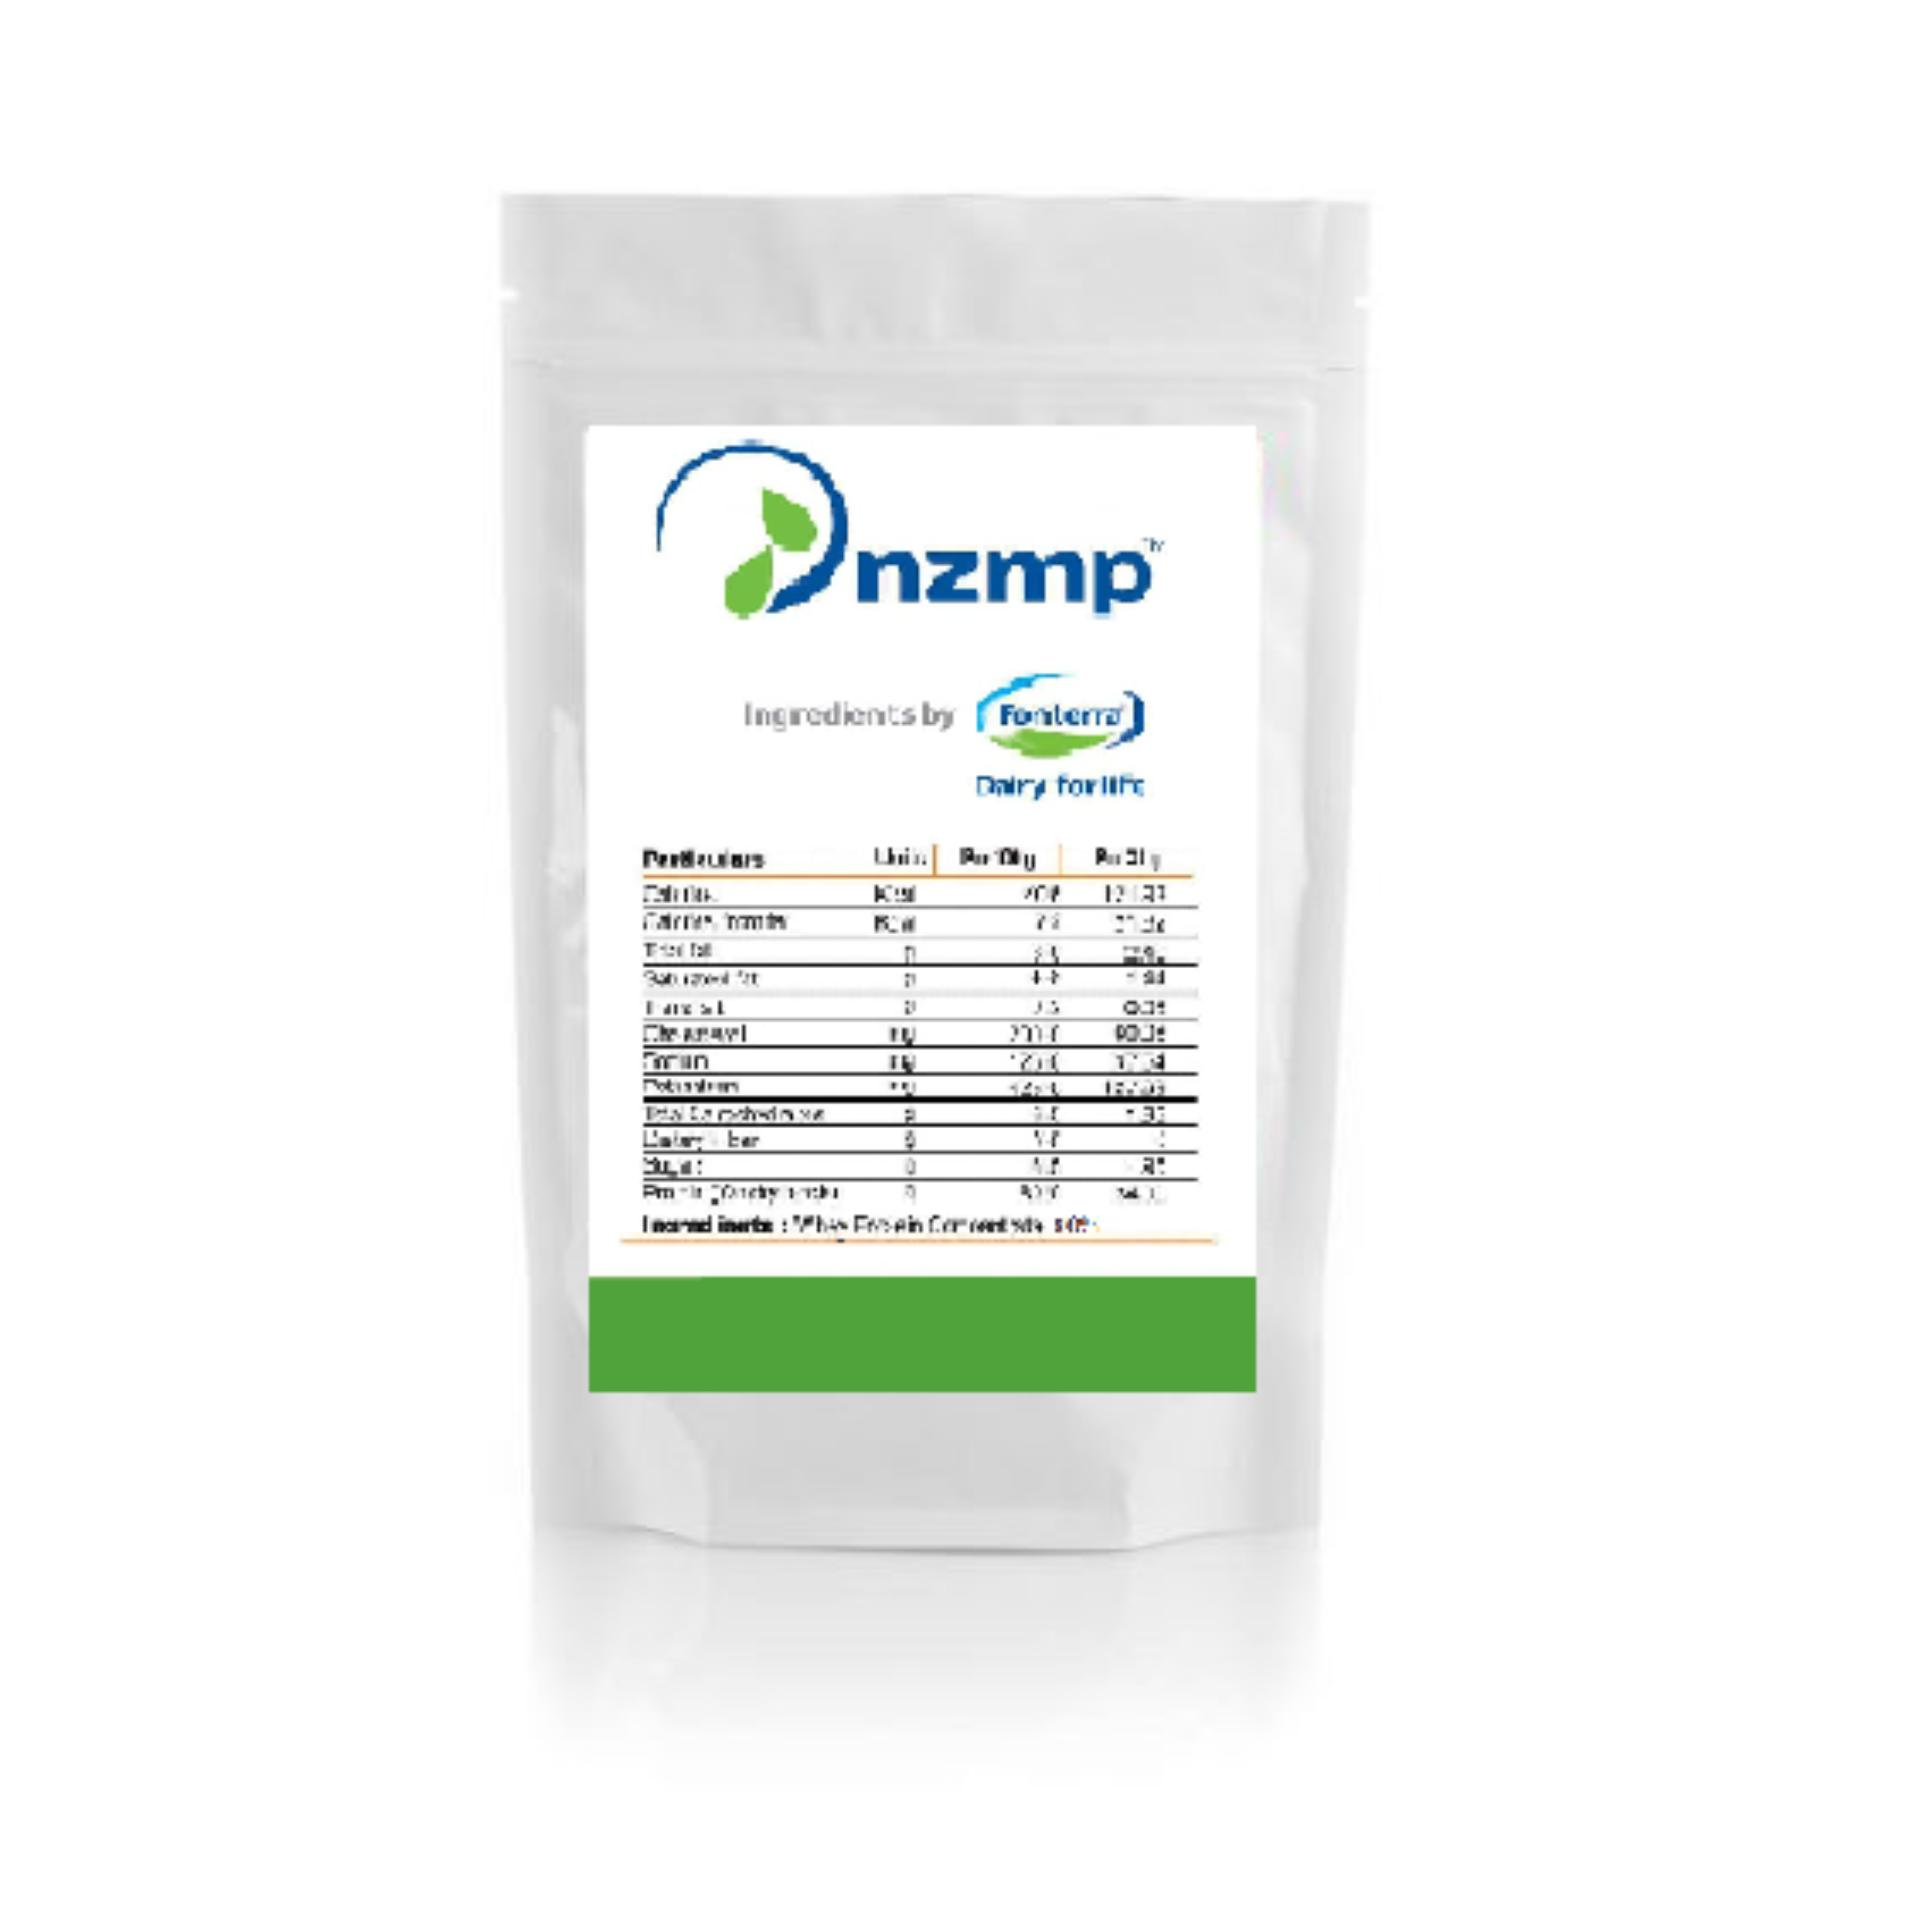 Giá Cực Tốt Khi Mua Bột Whey Protein Concentrate 80%